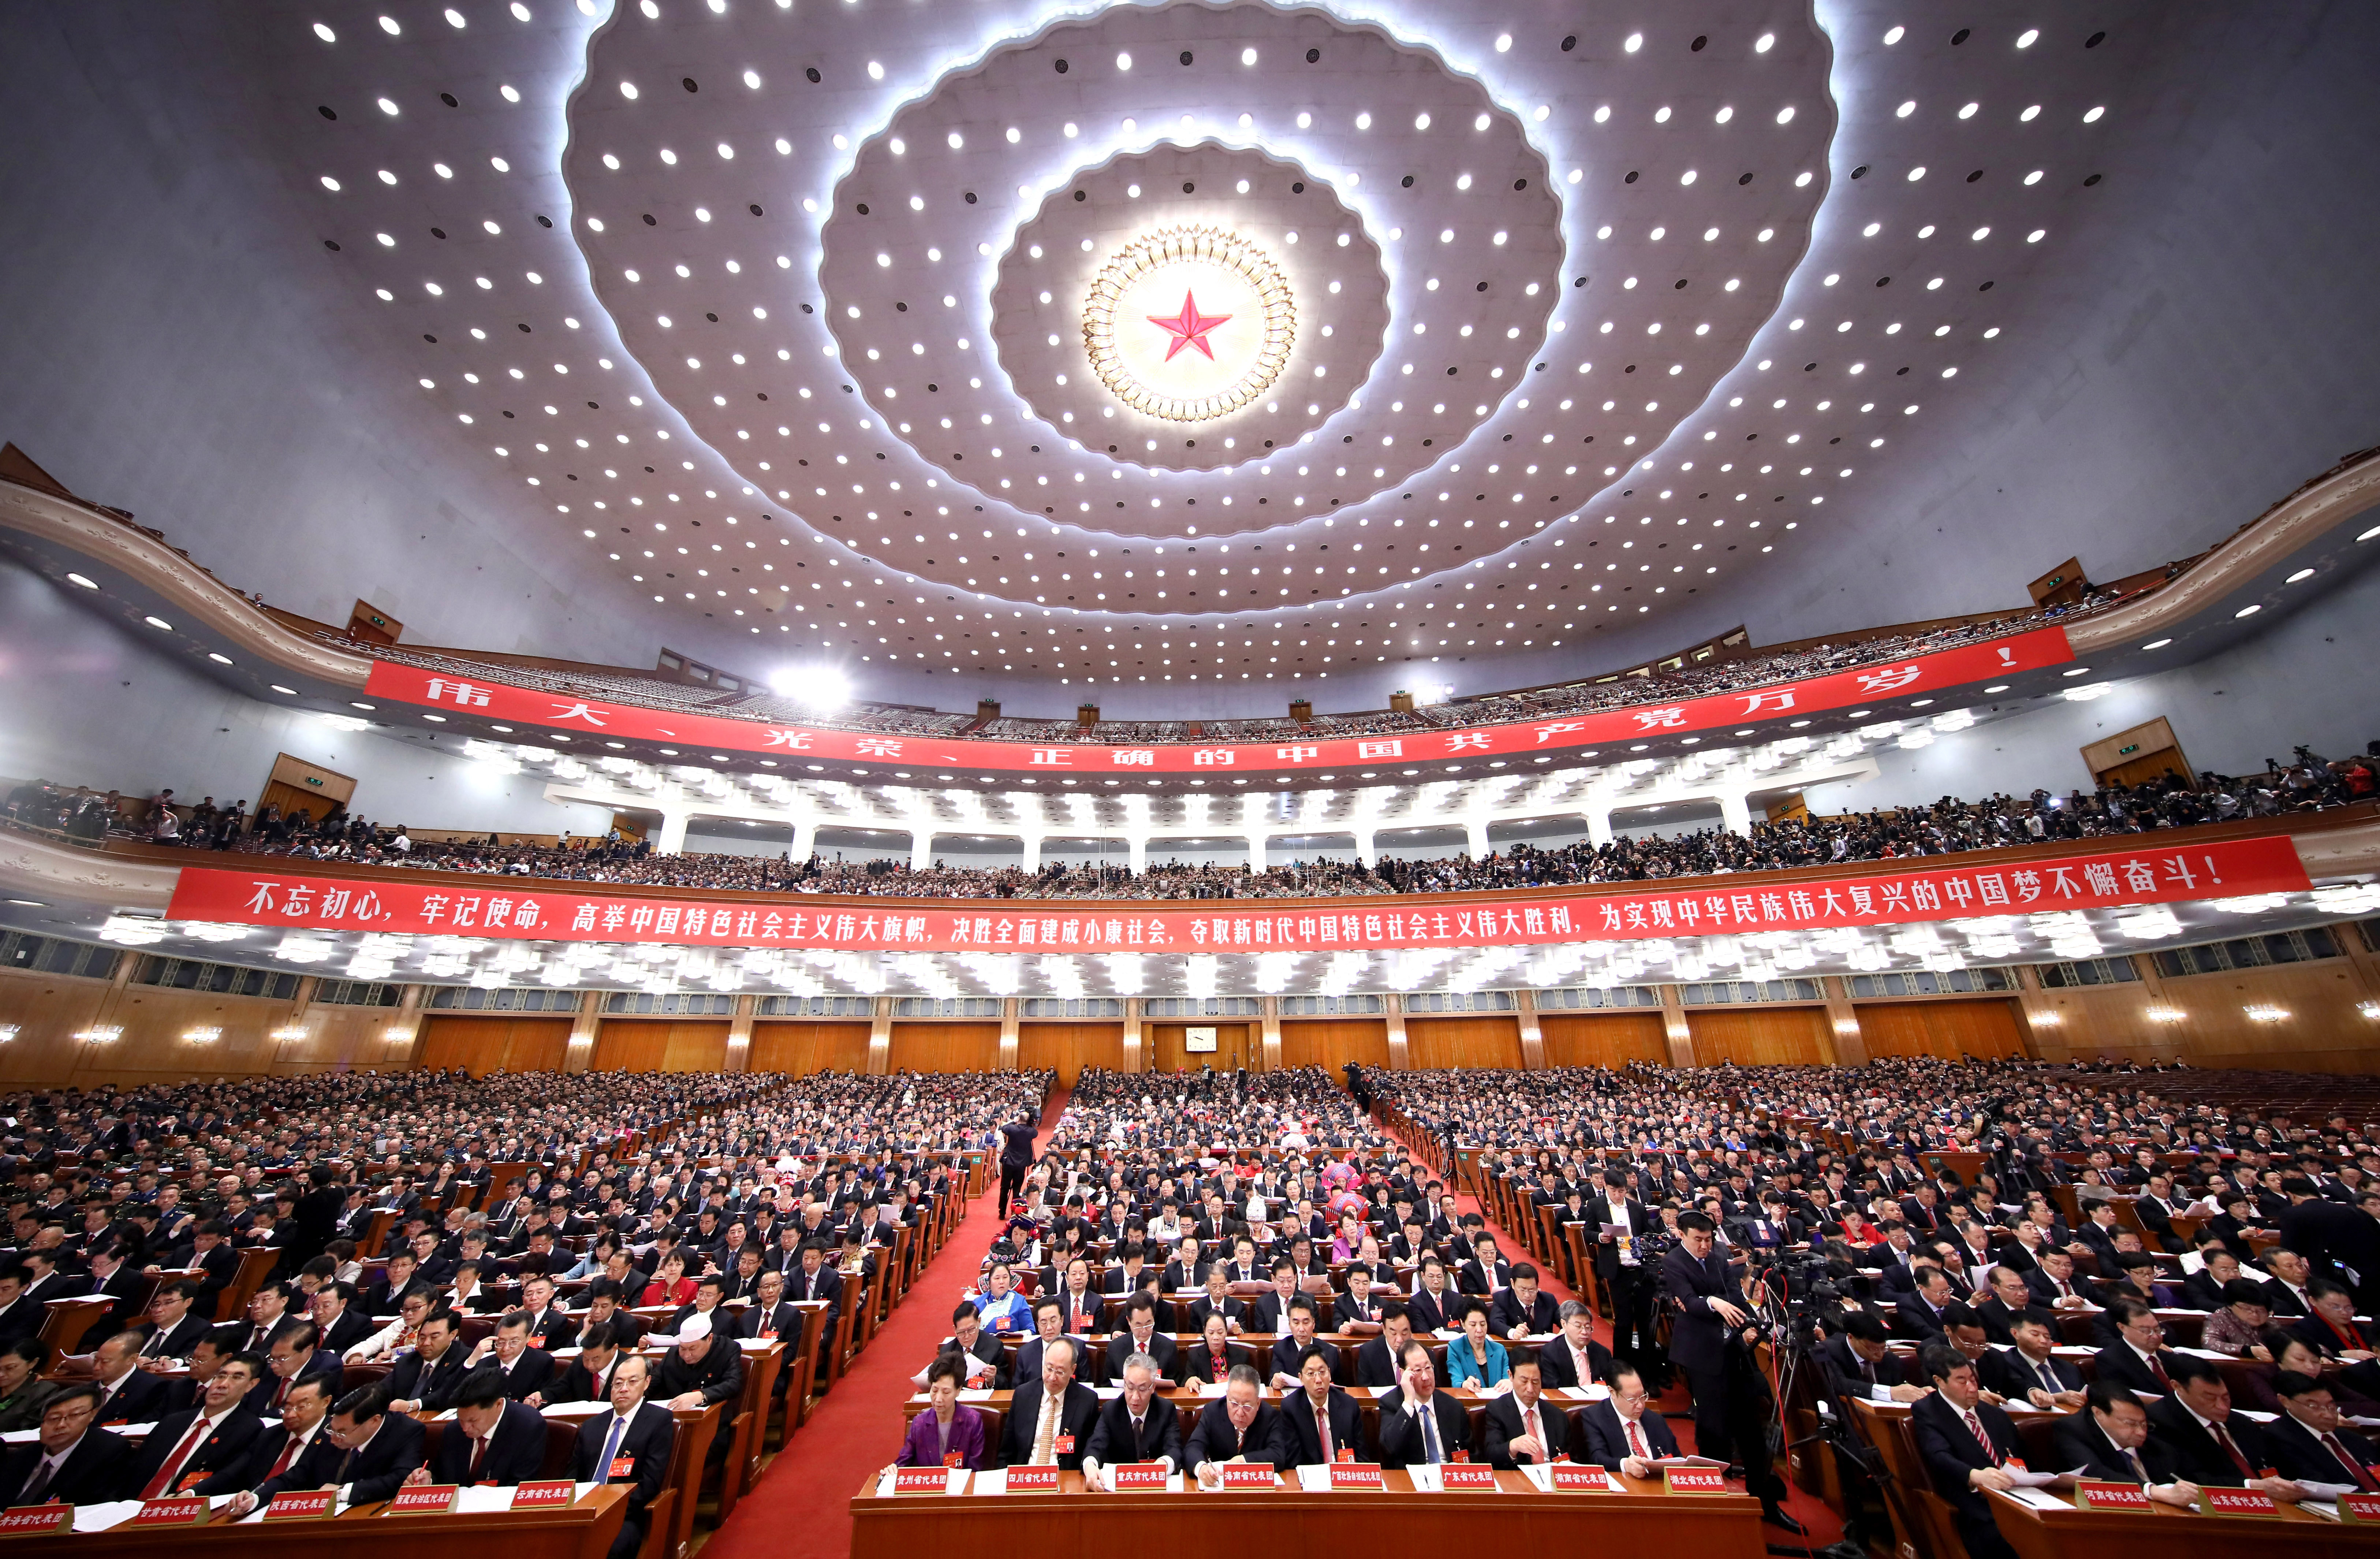 OCT. 18, 2017 -- The Communist Party of China (CPC) opens the 19th National Congress at the Great Hall of the People in Beijing. Zhang Yang, who committed suicide amid a corruption investigation, was barred from the congress.